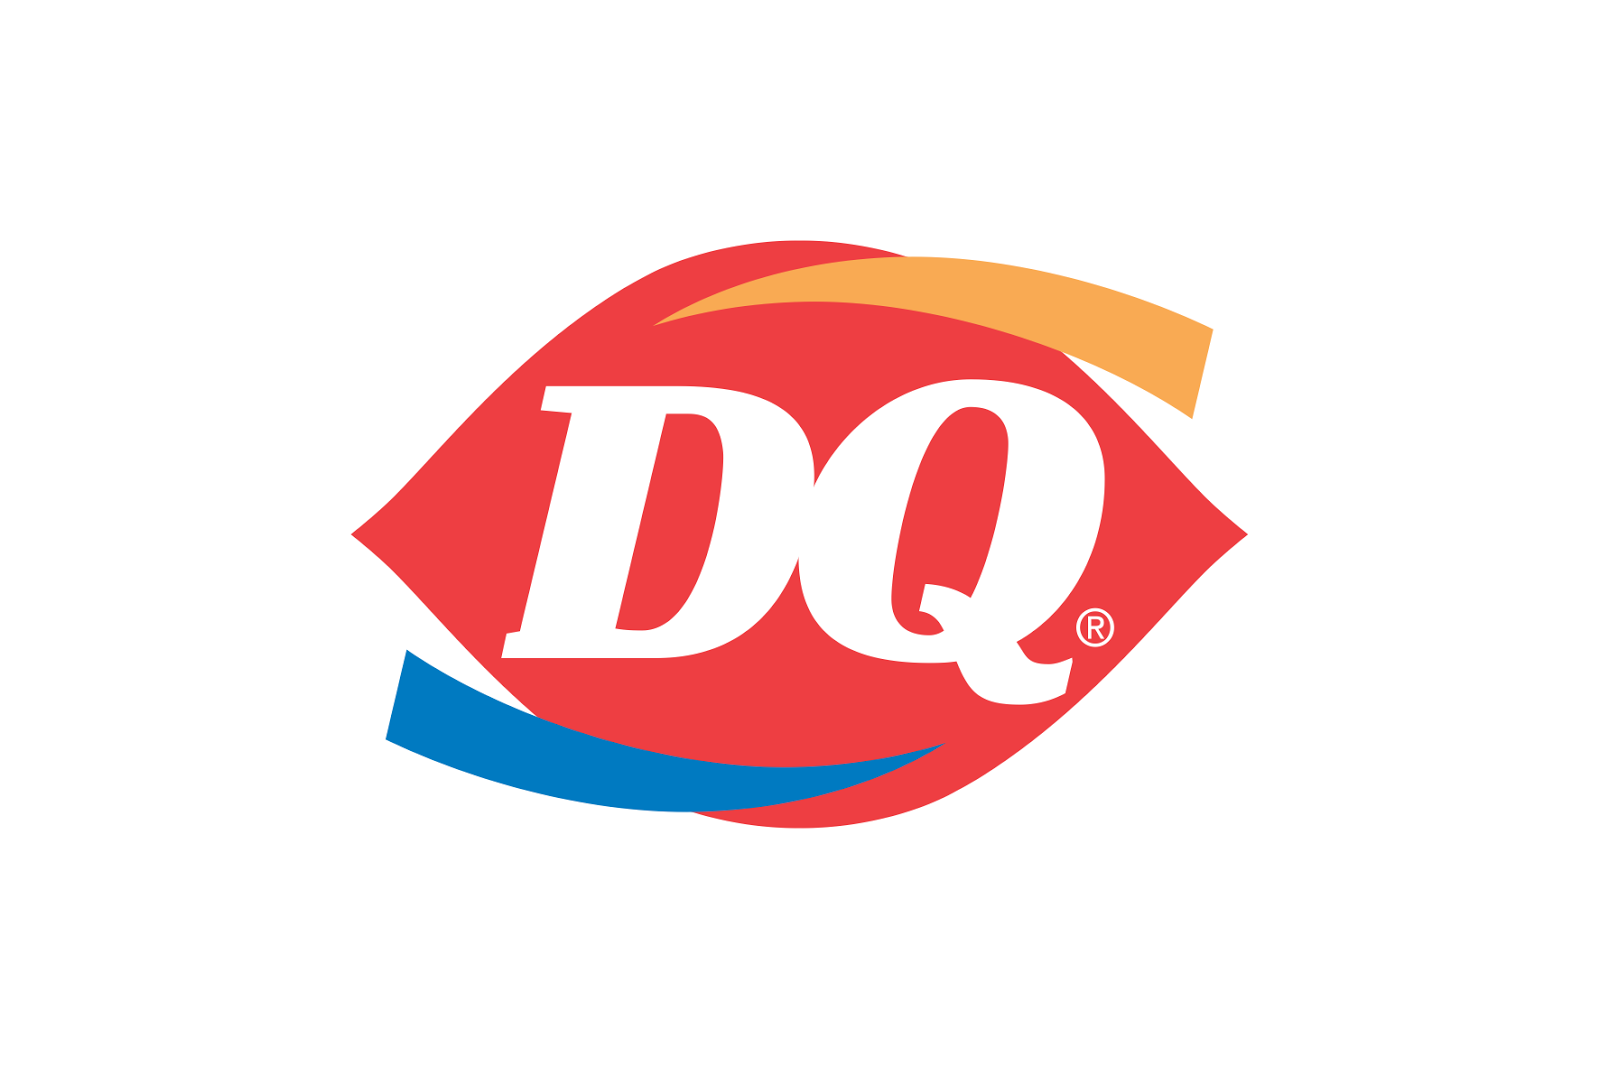 clip art dairy queen - photo #15